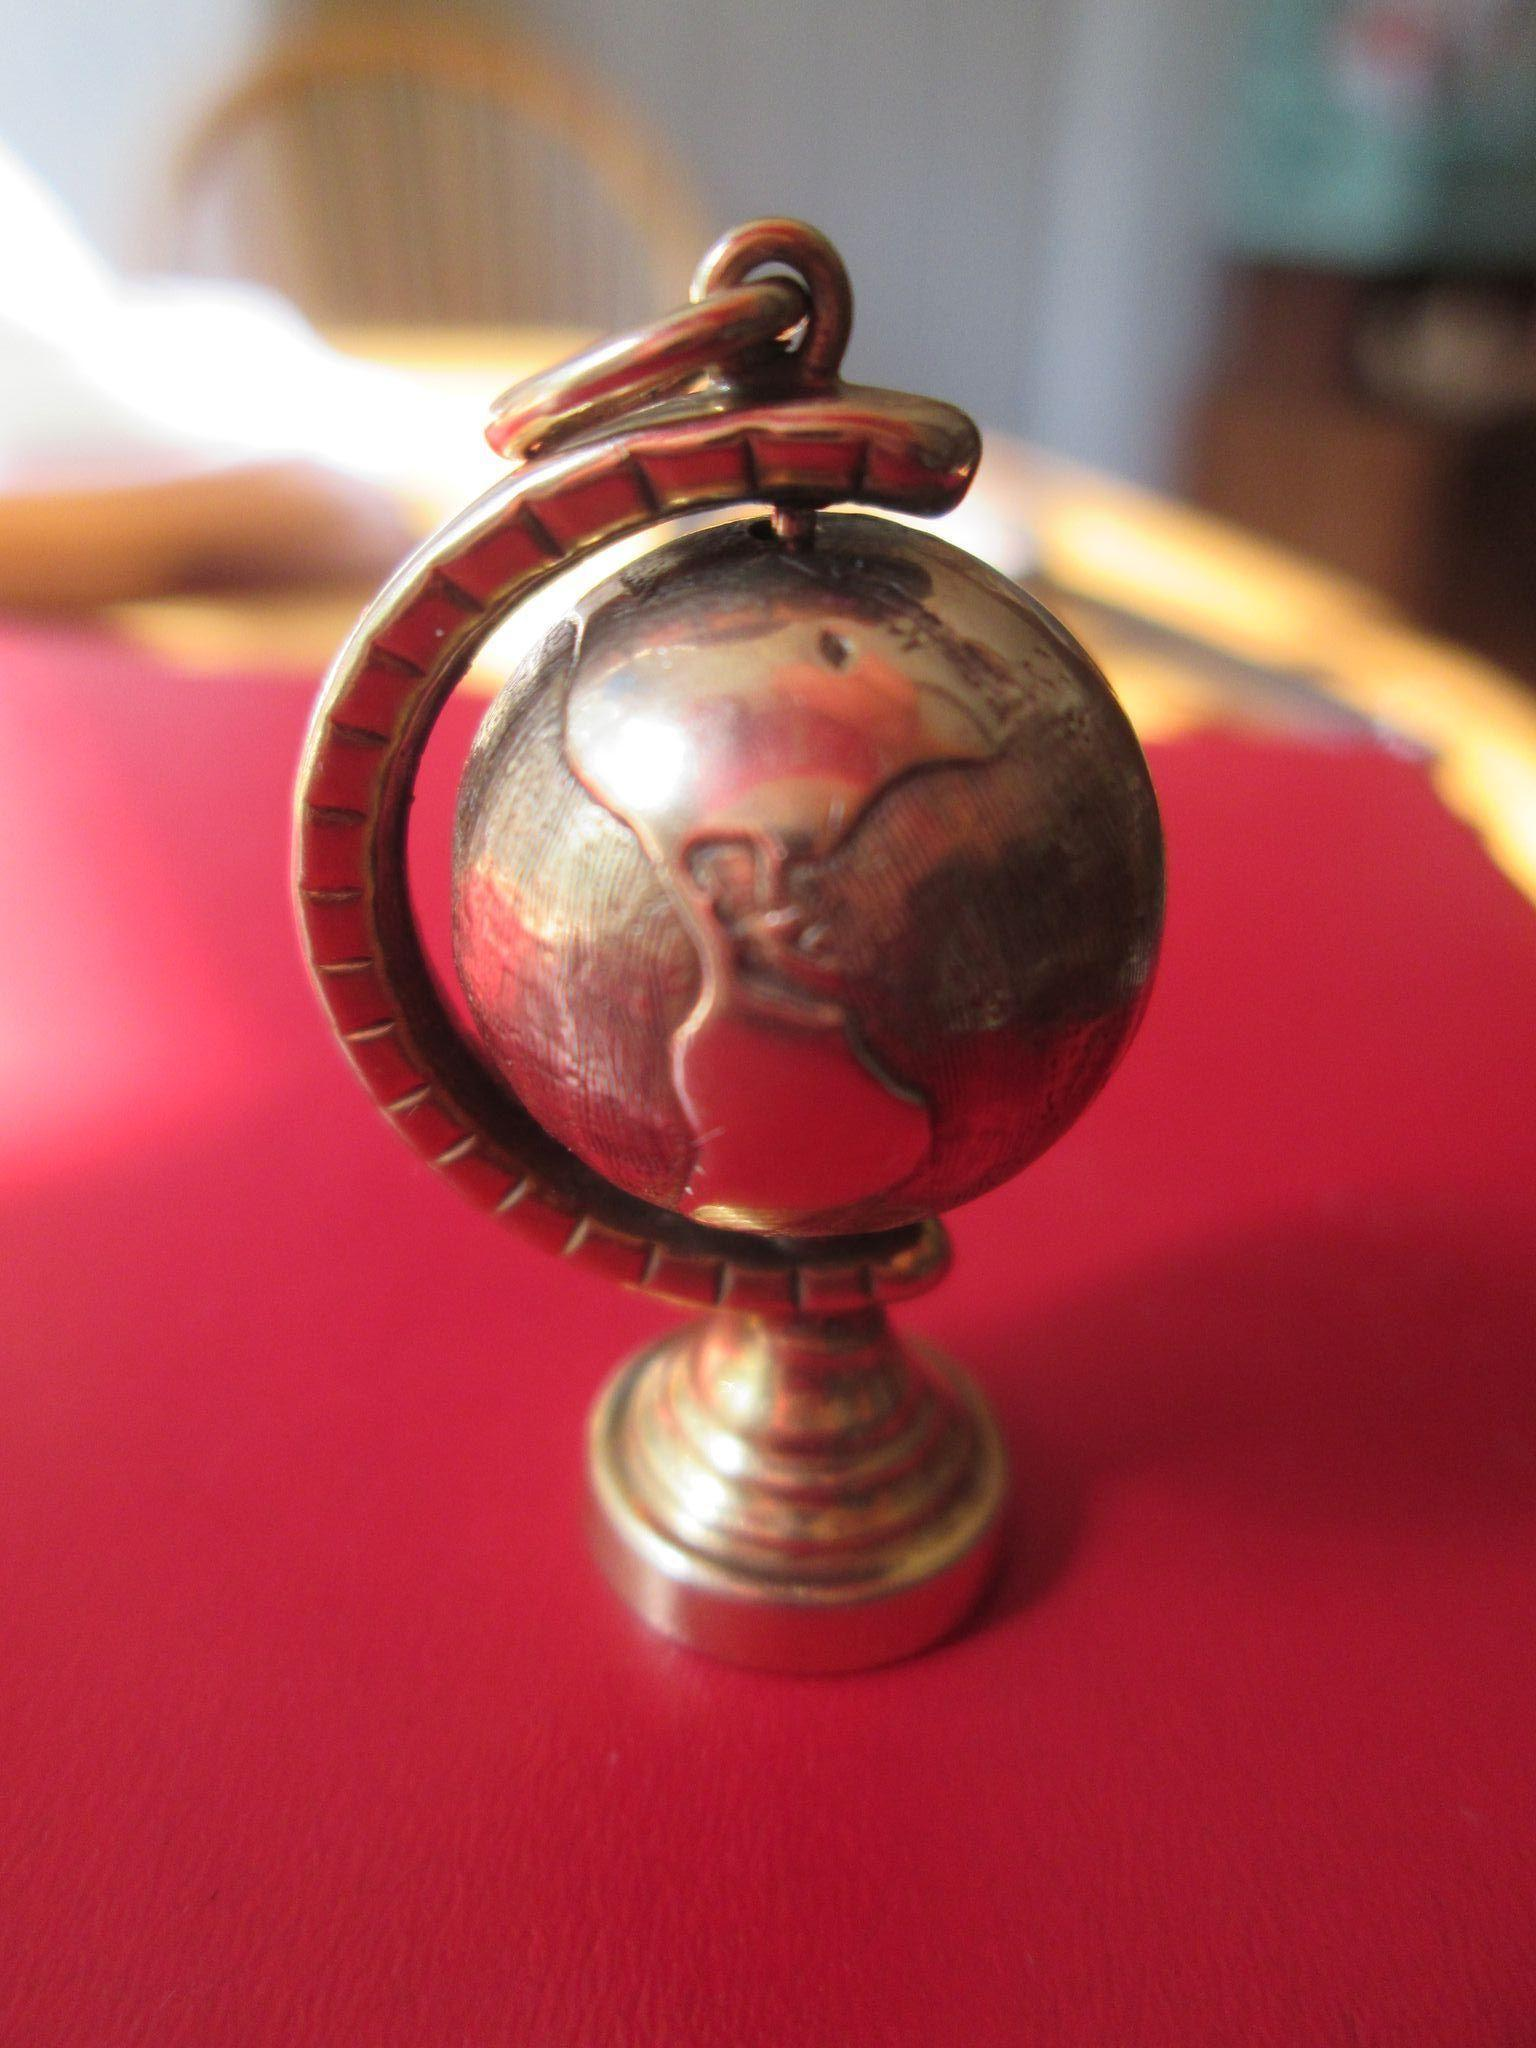 9ct Gold Globe Charm - Large, Well Made, and it Spins !! Deluxe Doll House Miniature too!!